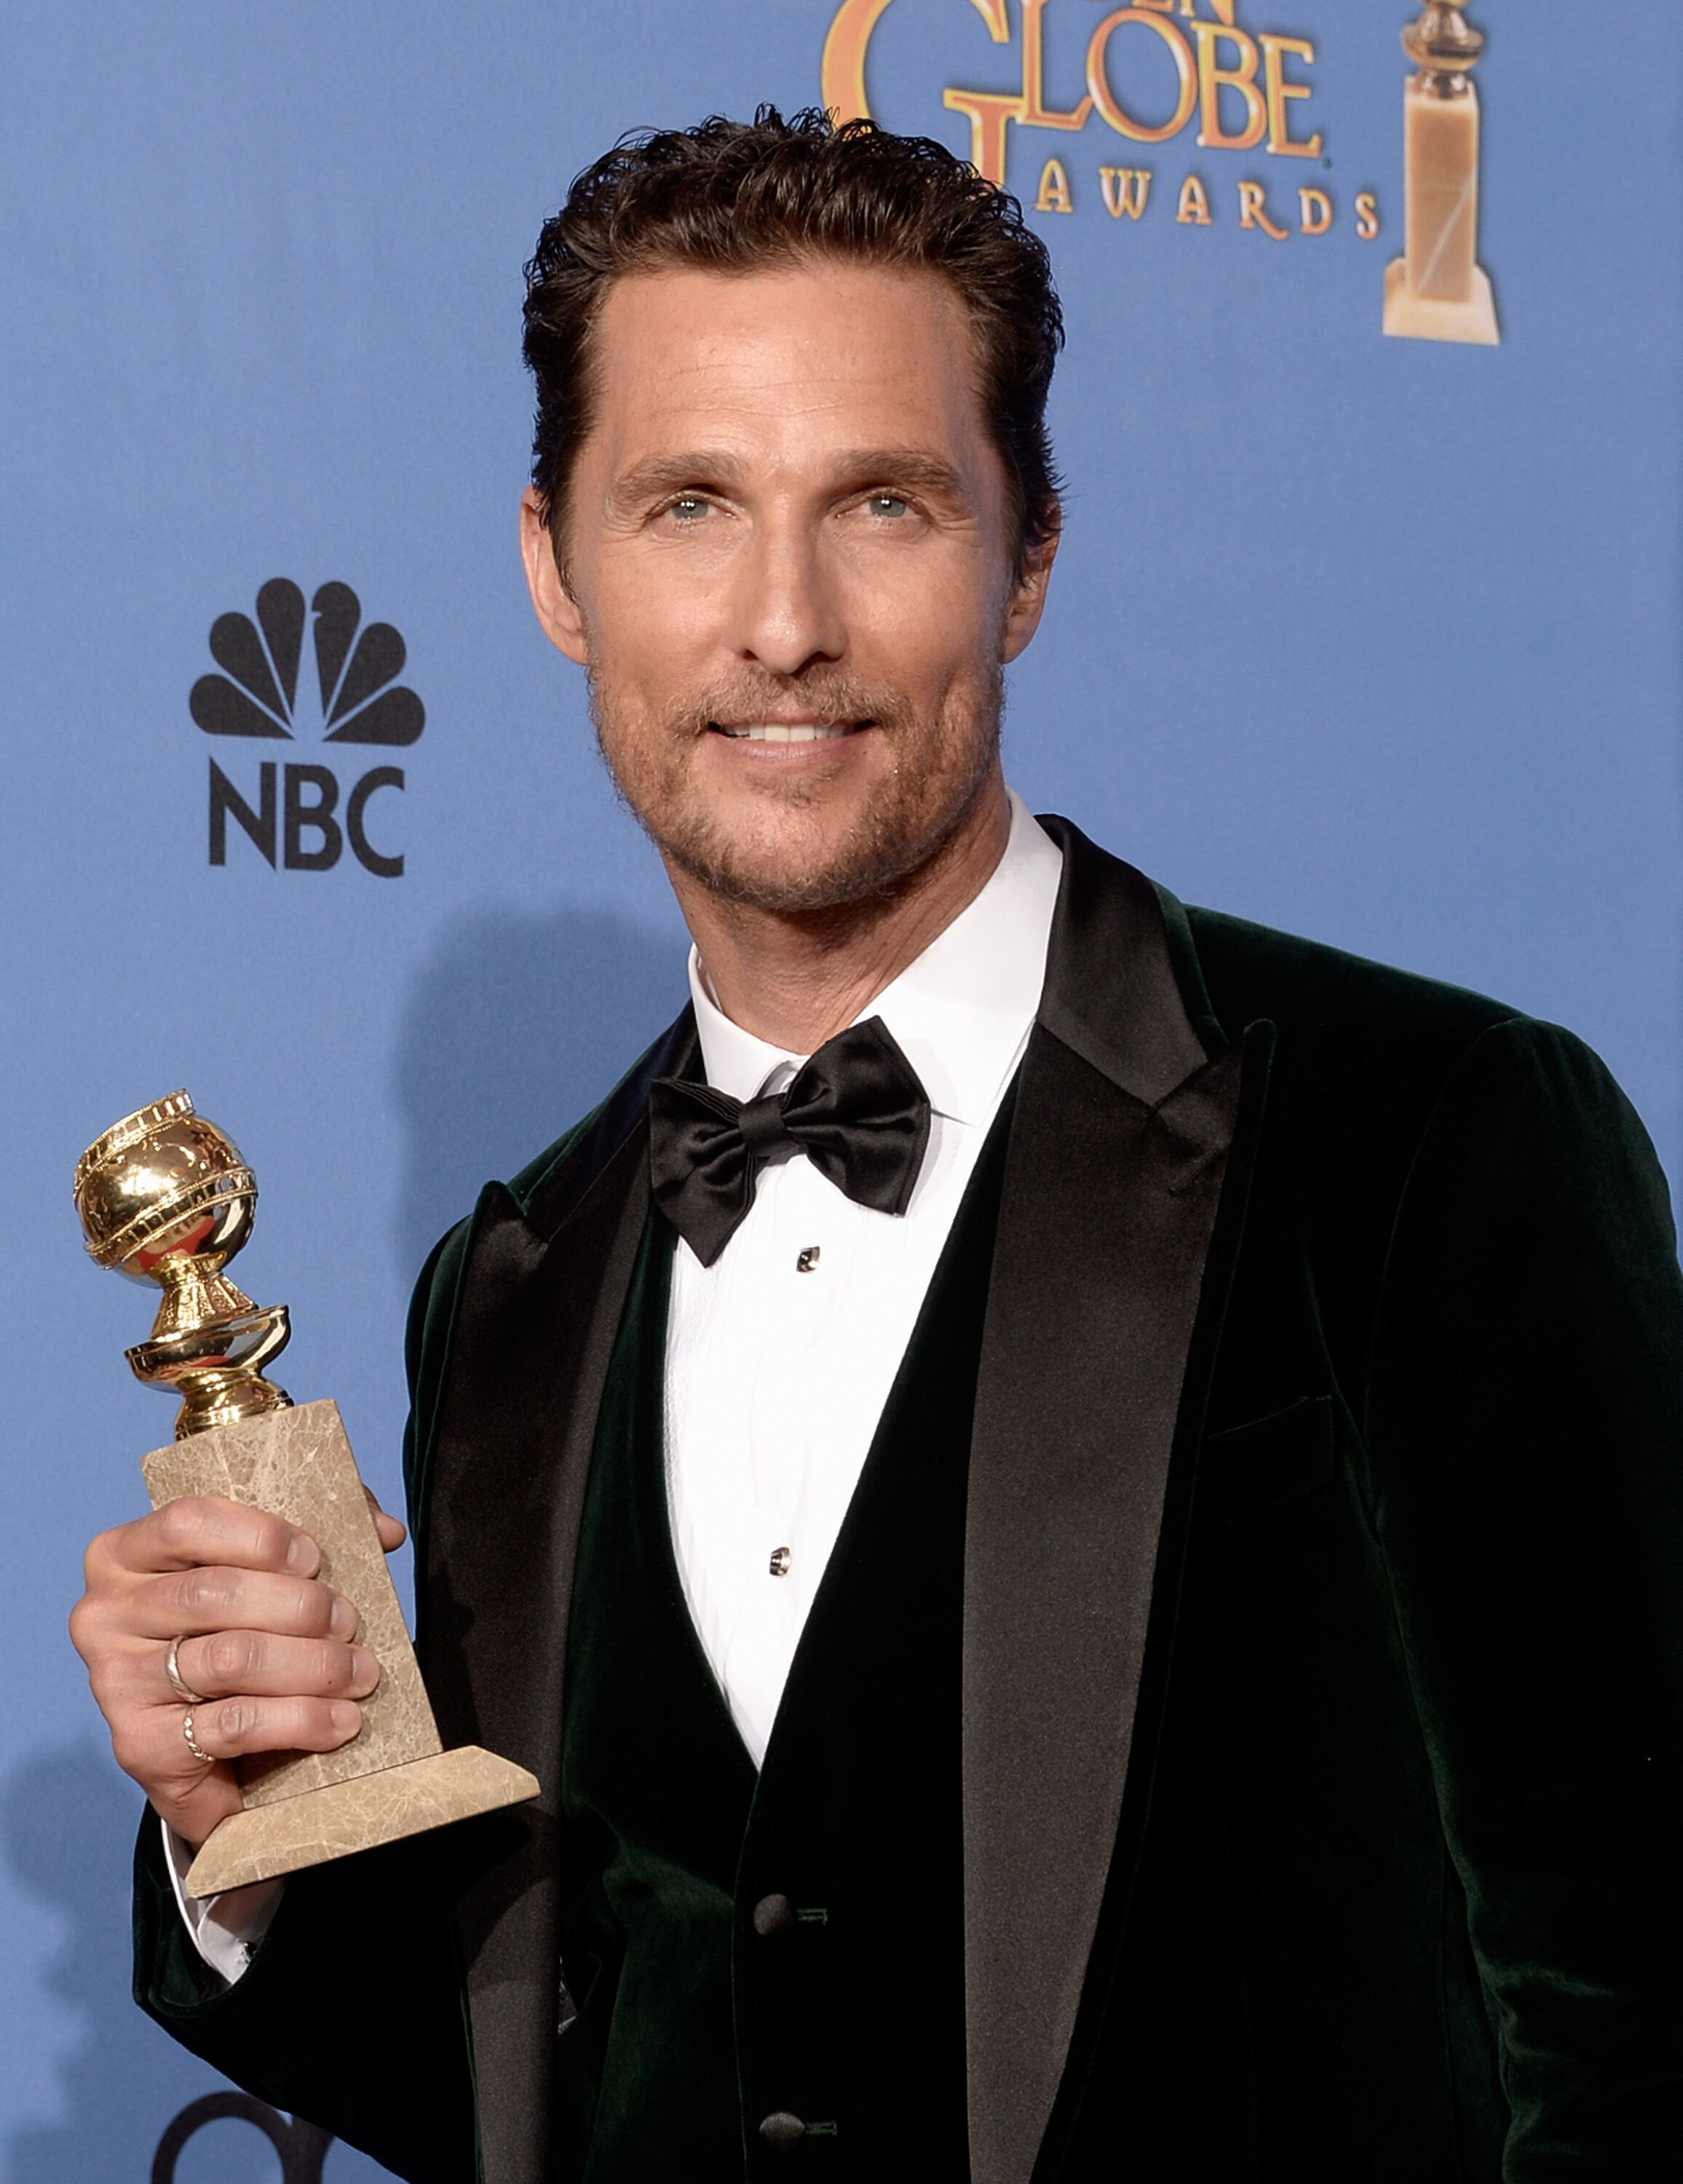 Matthew McConaughey, winner of Best Actor in a Motion Picture - Drama for 'Dallas Buyers Club' | Source: Getty Images